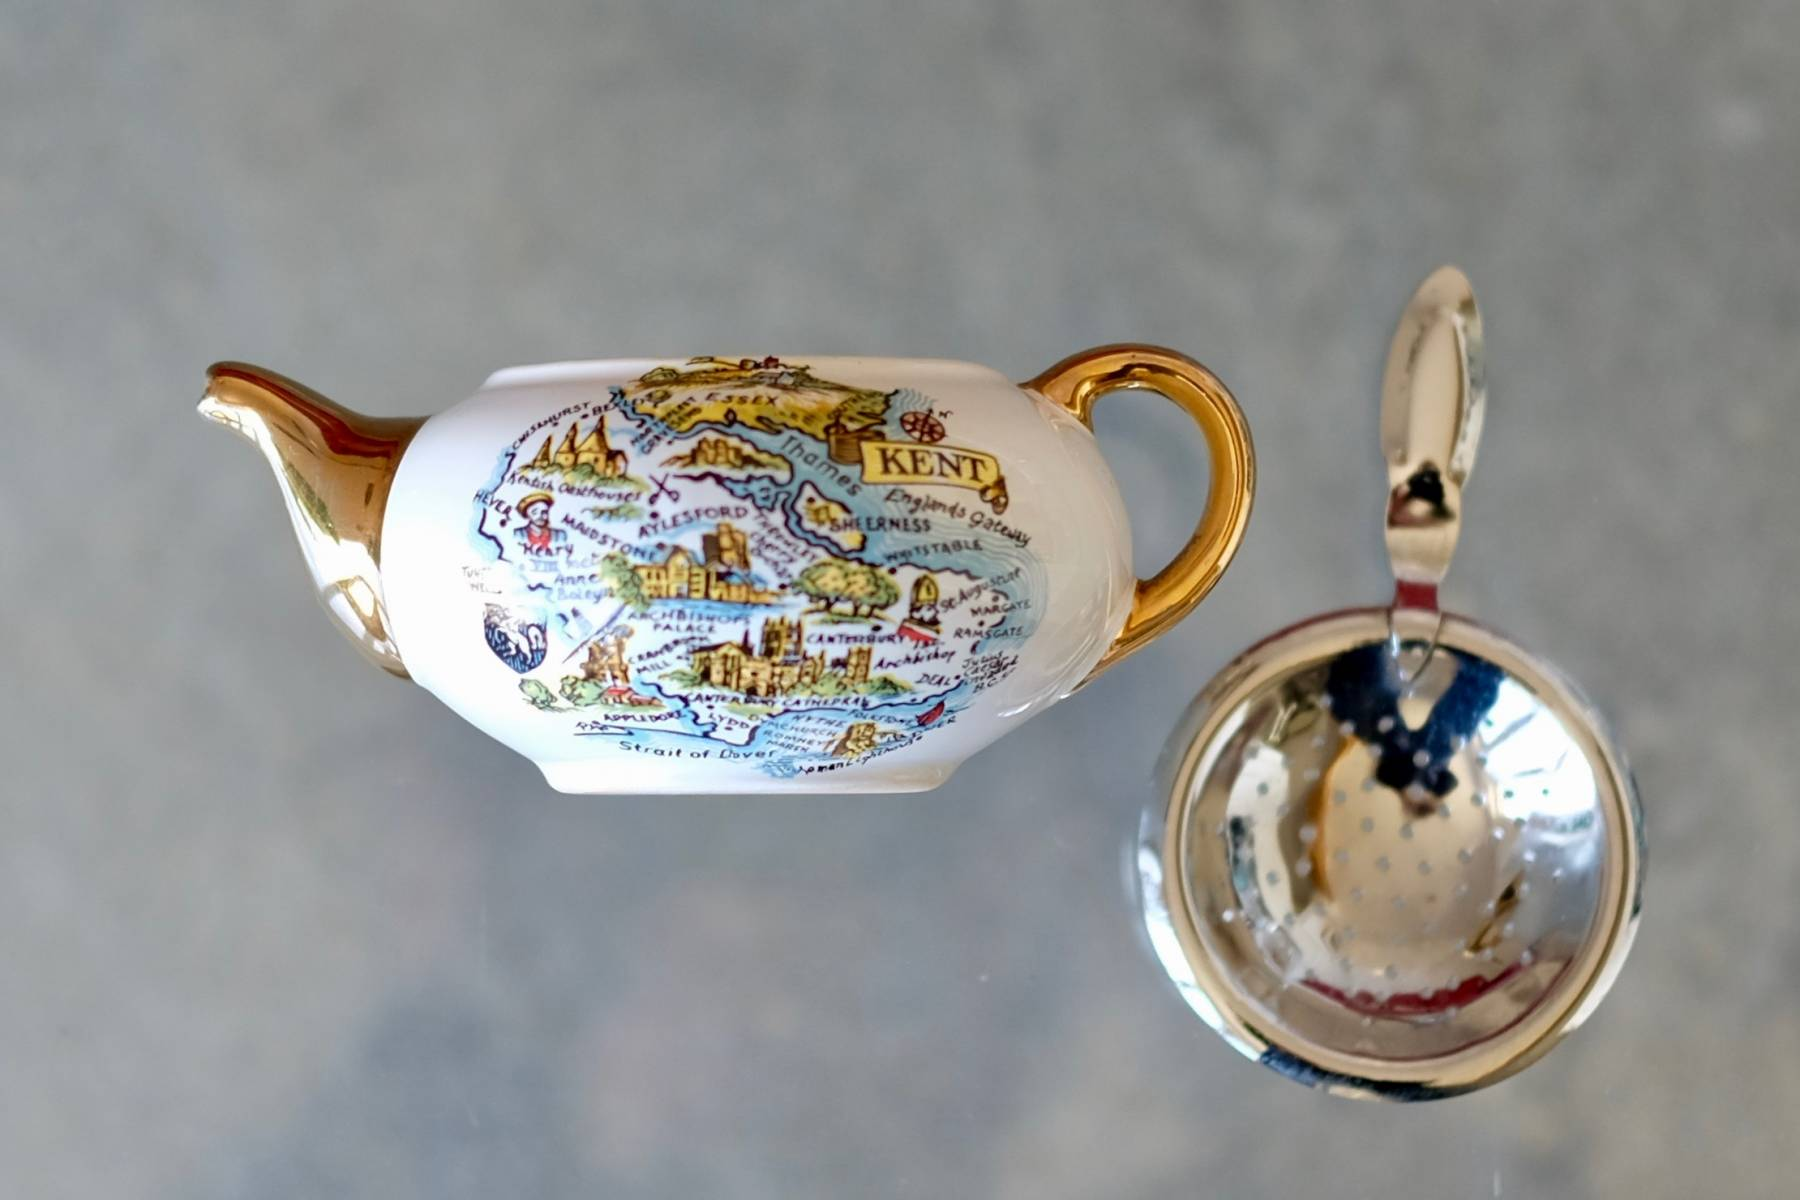 Kent Teapot and Strainer